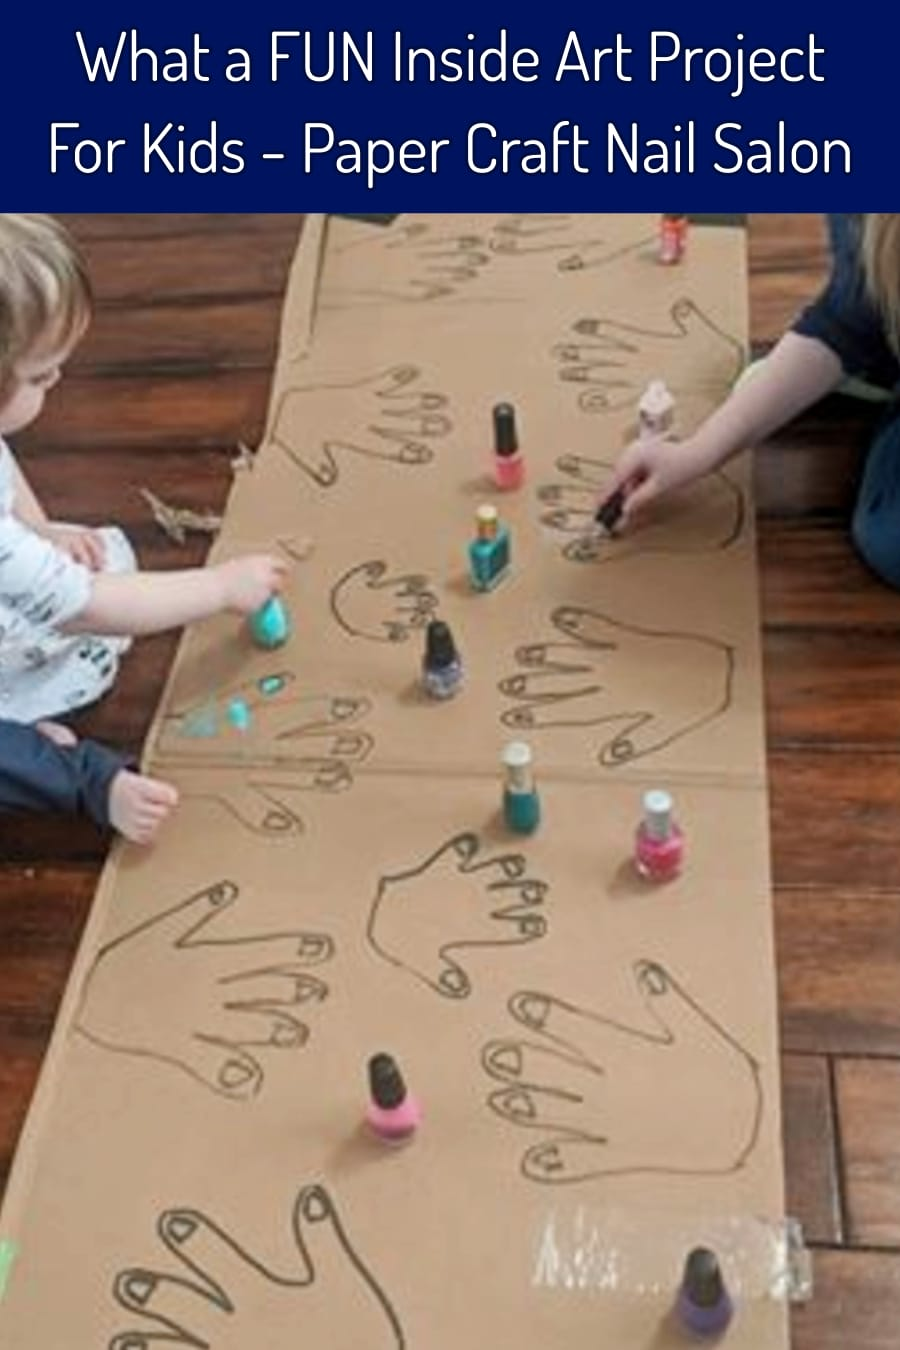 Indoor Arts and Crafts For Kids - What a FUN and easy craft project for your kids (little girls LOVE it) - take construction paper or cardboard and outline their hand prints, draw fingernails and then let them paint the nails like their own nail salon